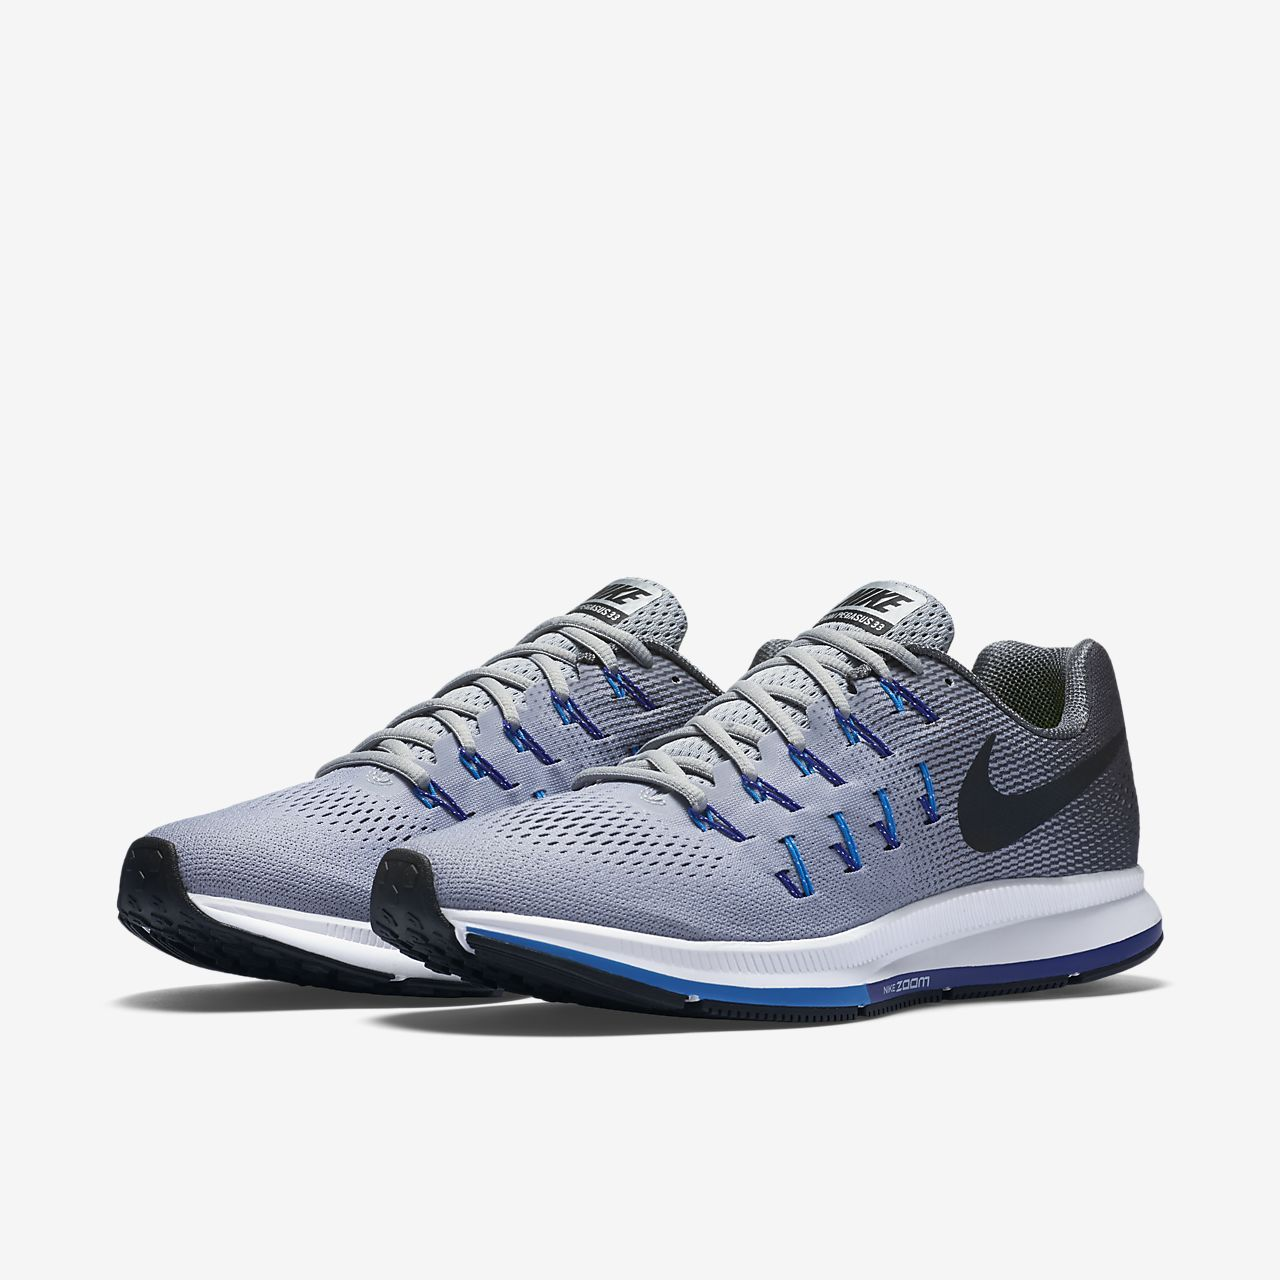 b895866c2 Nike Air Zoom Pegasus 33 Men's Running Shoe | Pretty clothes and ...